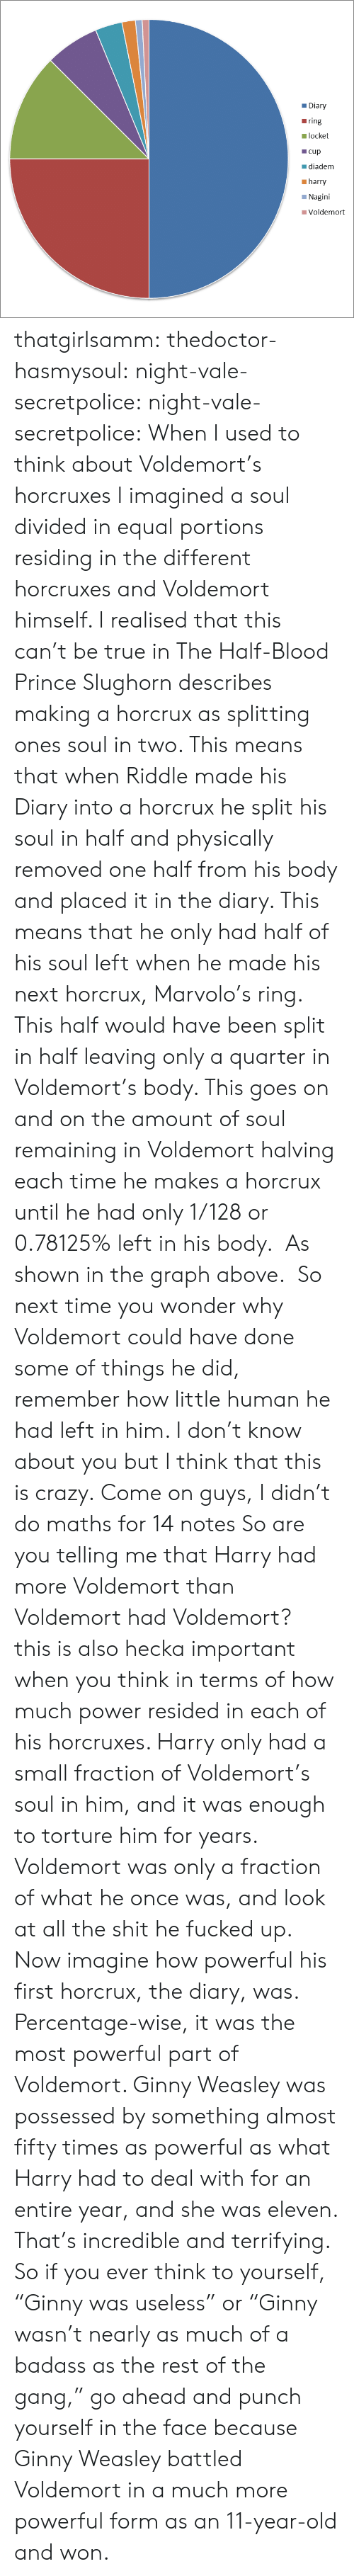 """Crazy, Prince, and Shit: Diary  ring  locket  cup  diadem  harry  Nagini  I Voldemort thatgirlsamm:  thedoctor-hasmysoul:  night-vale-secretpolice:  night-vale-secretpolice:  When I used to think about Voldemort's horcruxes I imagined a soul divided in equal portions residing in the different horcruxes and Voldemort himself. I realised that this can't be true in The Half-Blood Prince Slughorn describes making a horcrux as splitting ones soul in two. This means that when Riddle made his Diary into a horcrux he split his soul in half and physically removed one half from his body and placed it in the diary. This means that he only had half of his soul left when he made his next horcrux, Marvolo's ring. This half would have been split in half leaving only a quarter in Voldemort's body. This goes on and on the amount of soul remaining in Voldemort halving each time he makes a horcrux until he had only 1/128 or 0.78125% left in his body. As shown in the graph above. So next time you wonder why Voldemort could have done some of things he did, remember how little human he had left in him. I don't know about you but I think that this is crazy.  Come on guys, I didn't do maths for 14 notes  So are you telling me that Harry had more Voldemort than Voldemort had Voldemort?  this is also hecka important when you think in terms of how much power resided in each of his horcruxes. Harry only had a small fraction of Voldemort's soul in him, and it was enough to torture him for years. Voldemort was only a fraction of what he once was, and look at all the shit he fucked up. Now imagine how powerful his first horcrux, the diary, was. Percentage-wise, it was the most powerful part of Voldemort. Ginny Weasley was possessed by something almost fifty times as powerful as what Harry had to deal with for an entire year, and she was eleven. That's incredible and terrifying. So if you ever think to yourself, """"Ginny was useless"""" or """"Ginny wasn't nearly as much of a badass as the rest of the gan"""